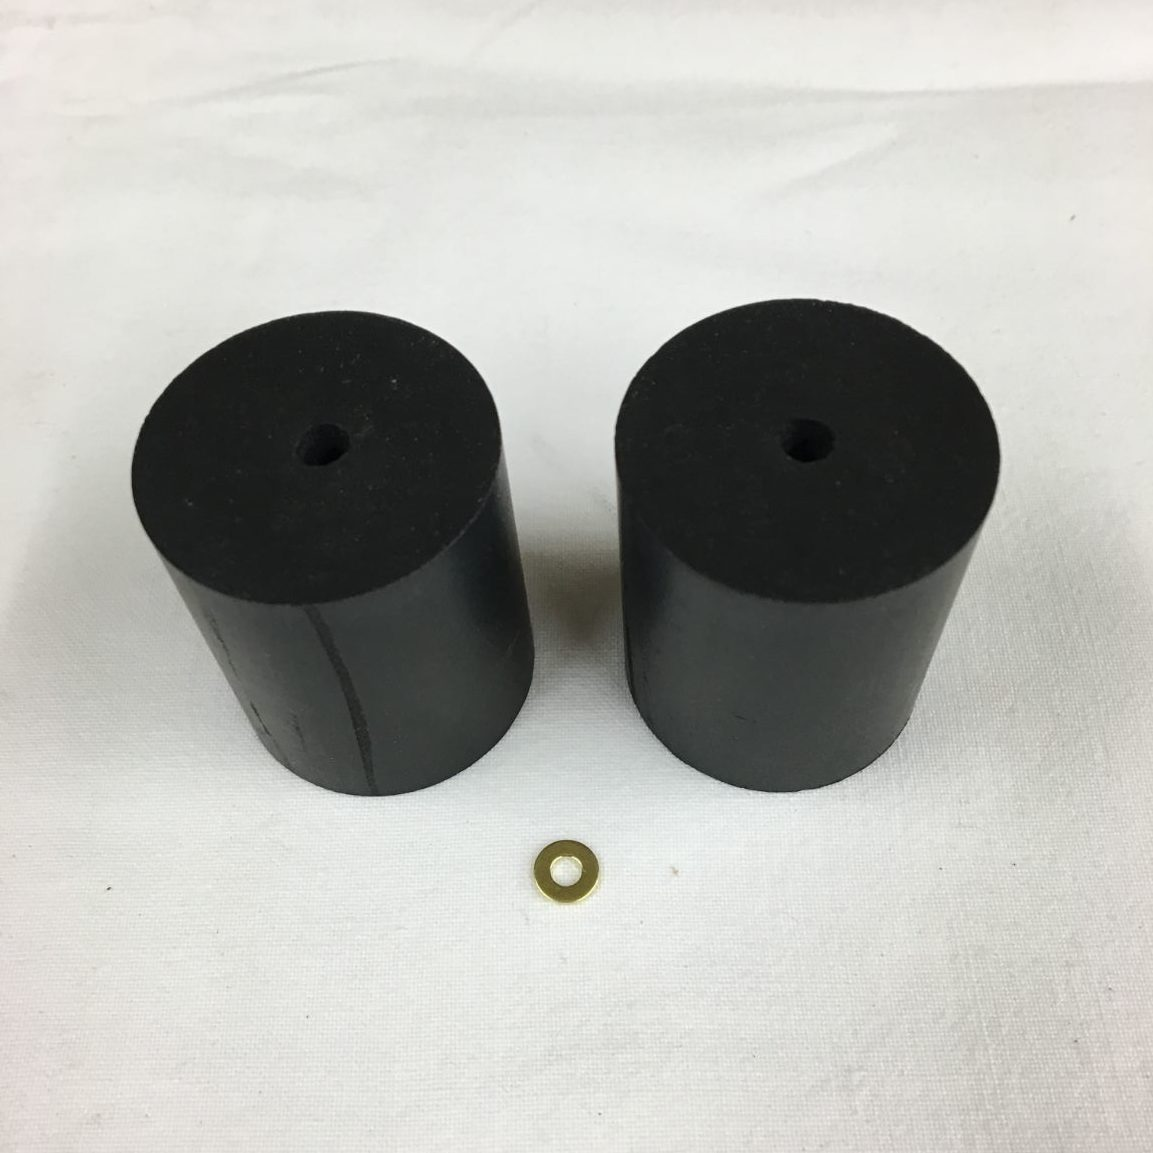 Fuel Sender Replacement Float And Lock Ring Black Plastic